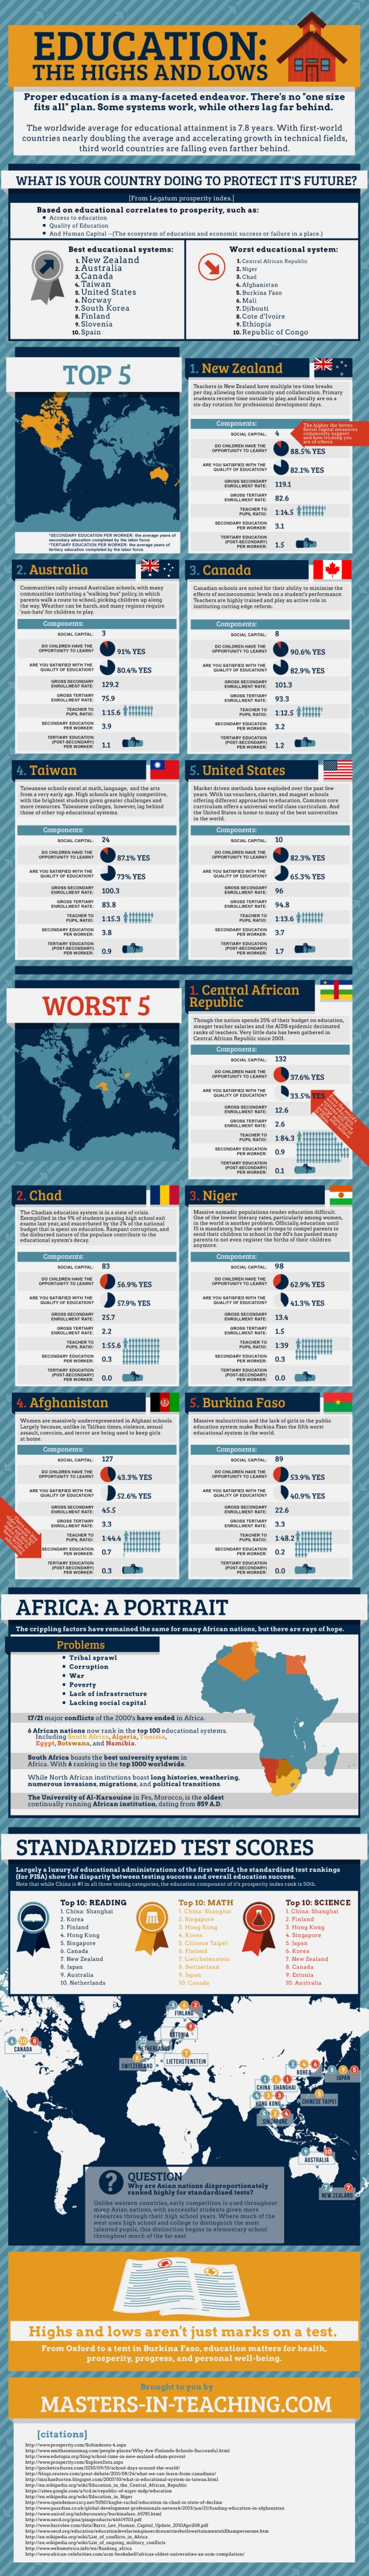 global-education-the-highs-and-lows